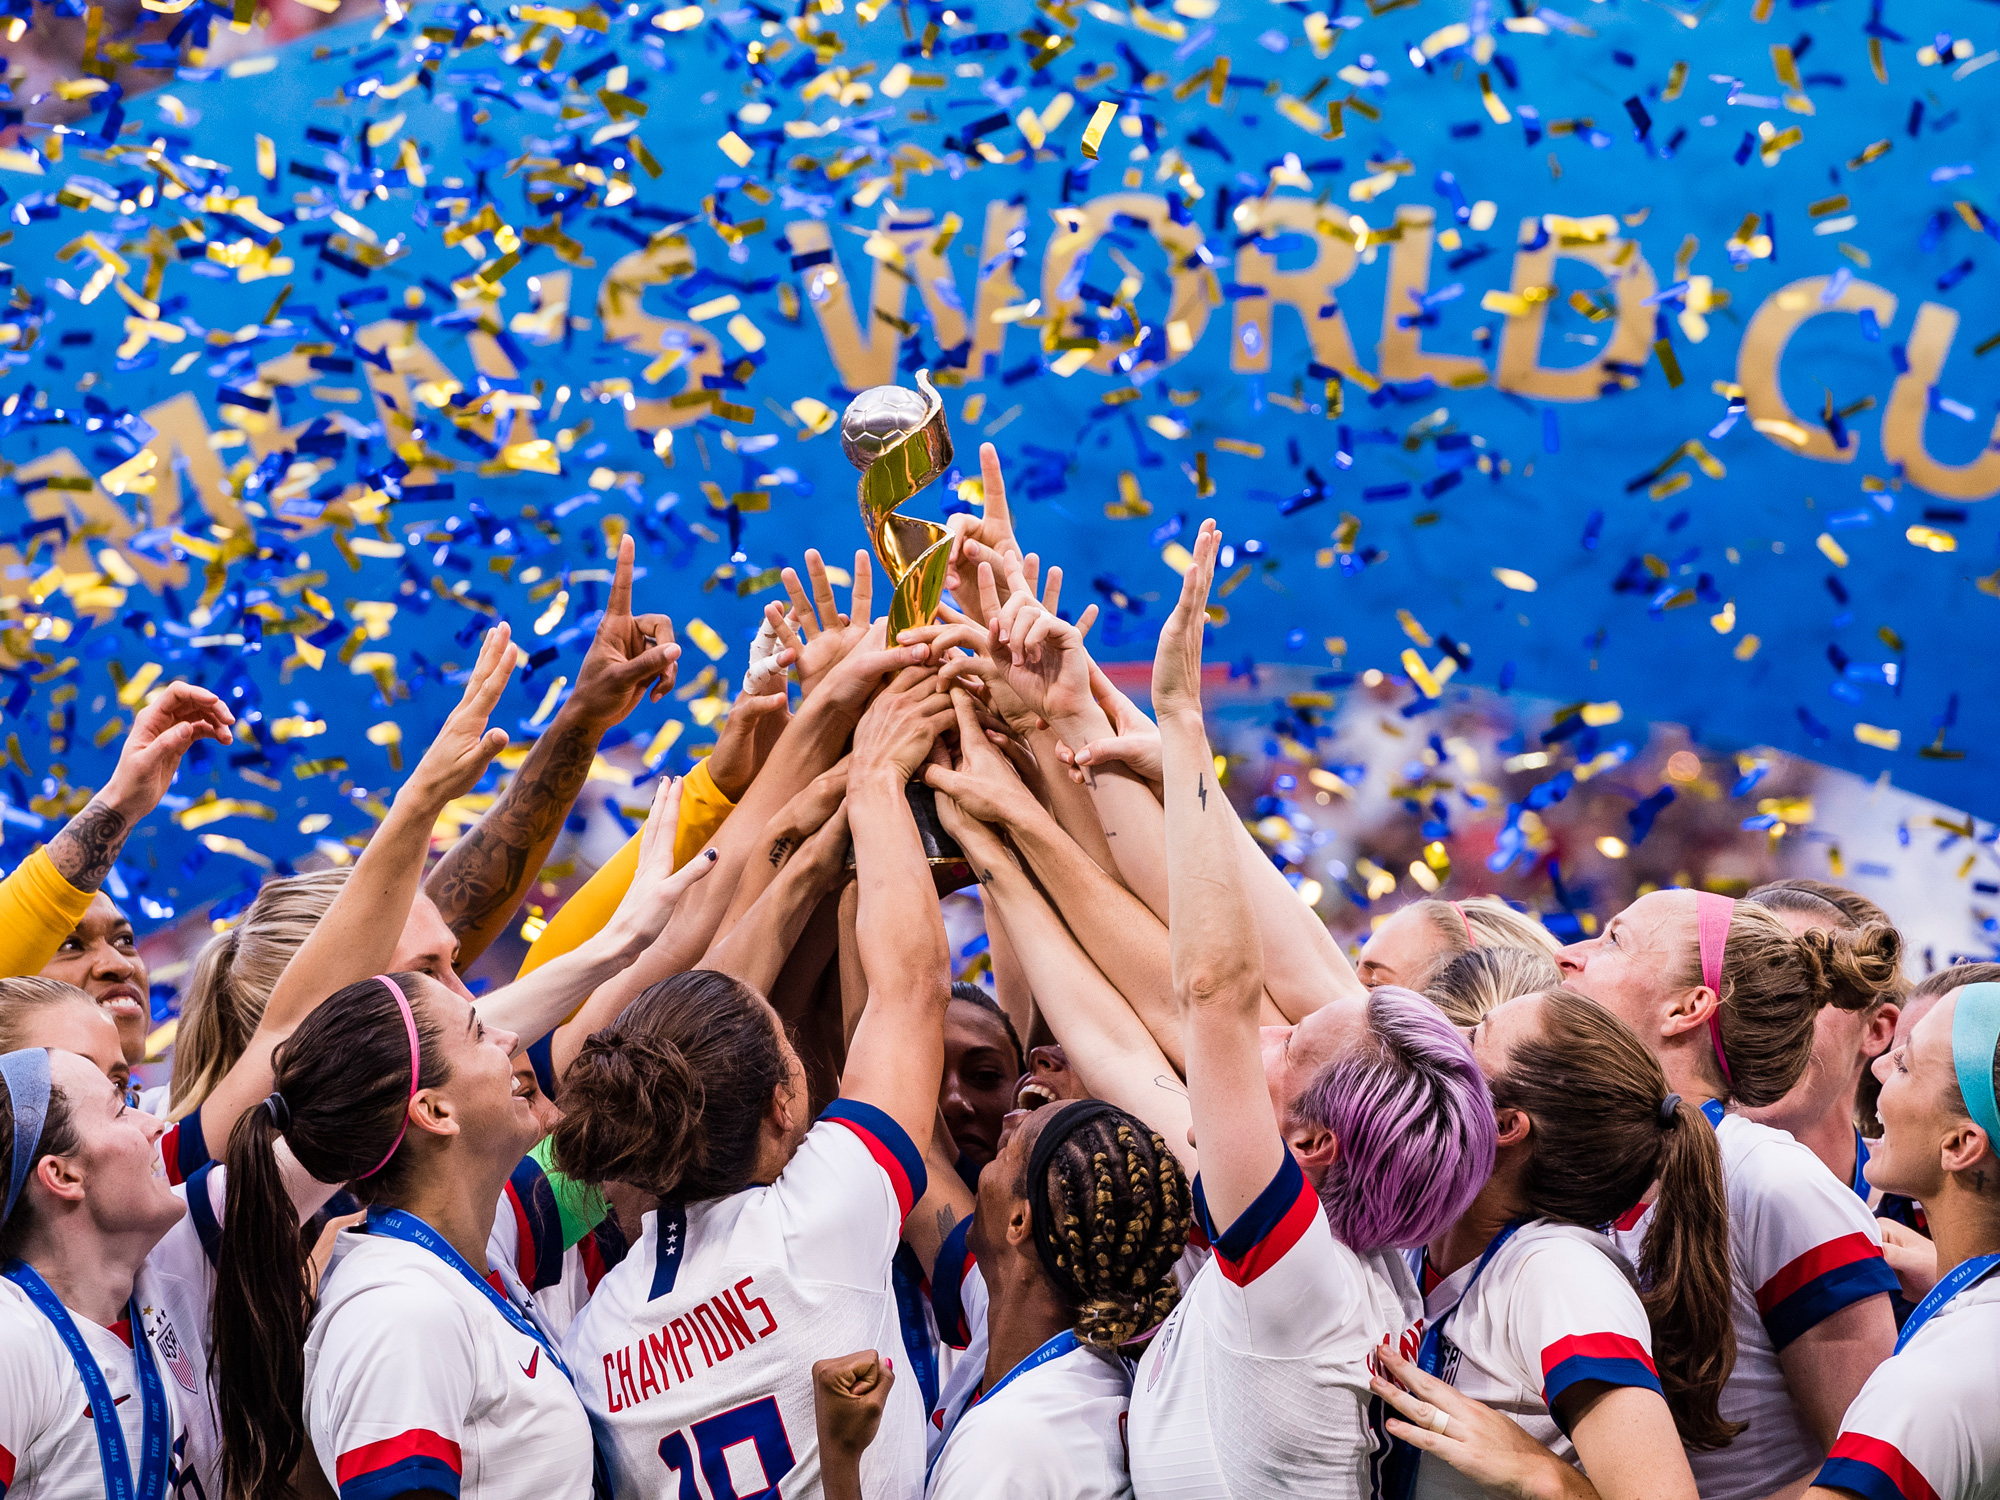 The USWNT lifts the 2019 Women's World Cup trophy